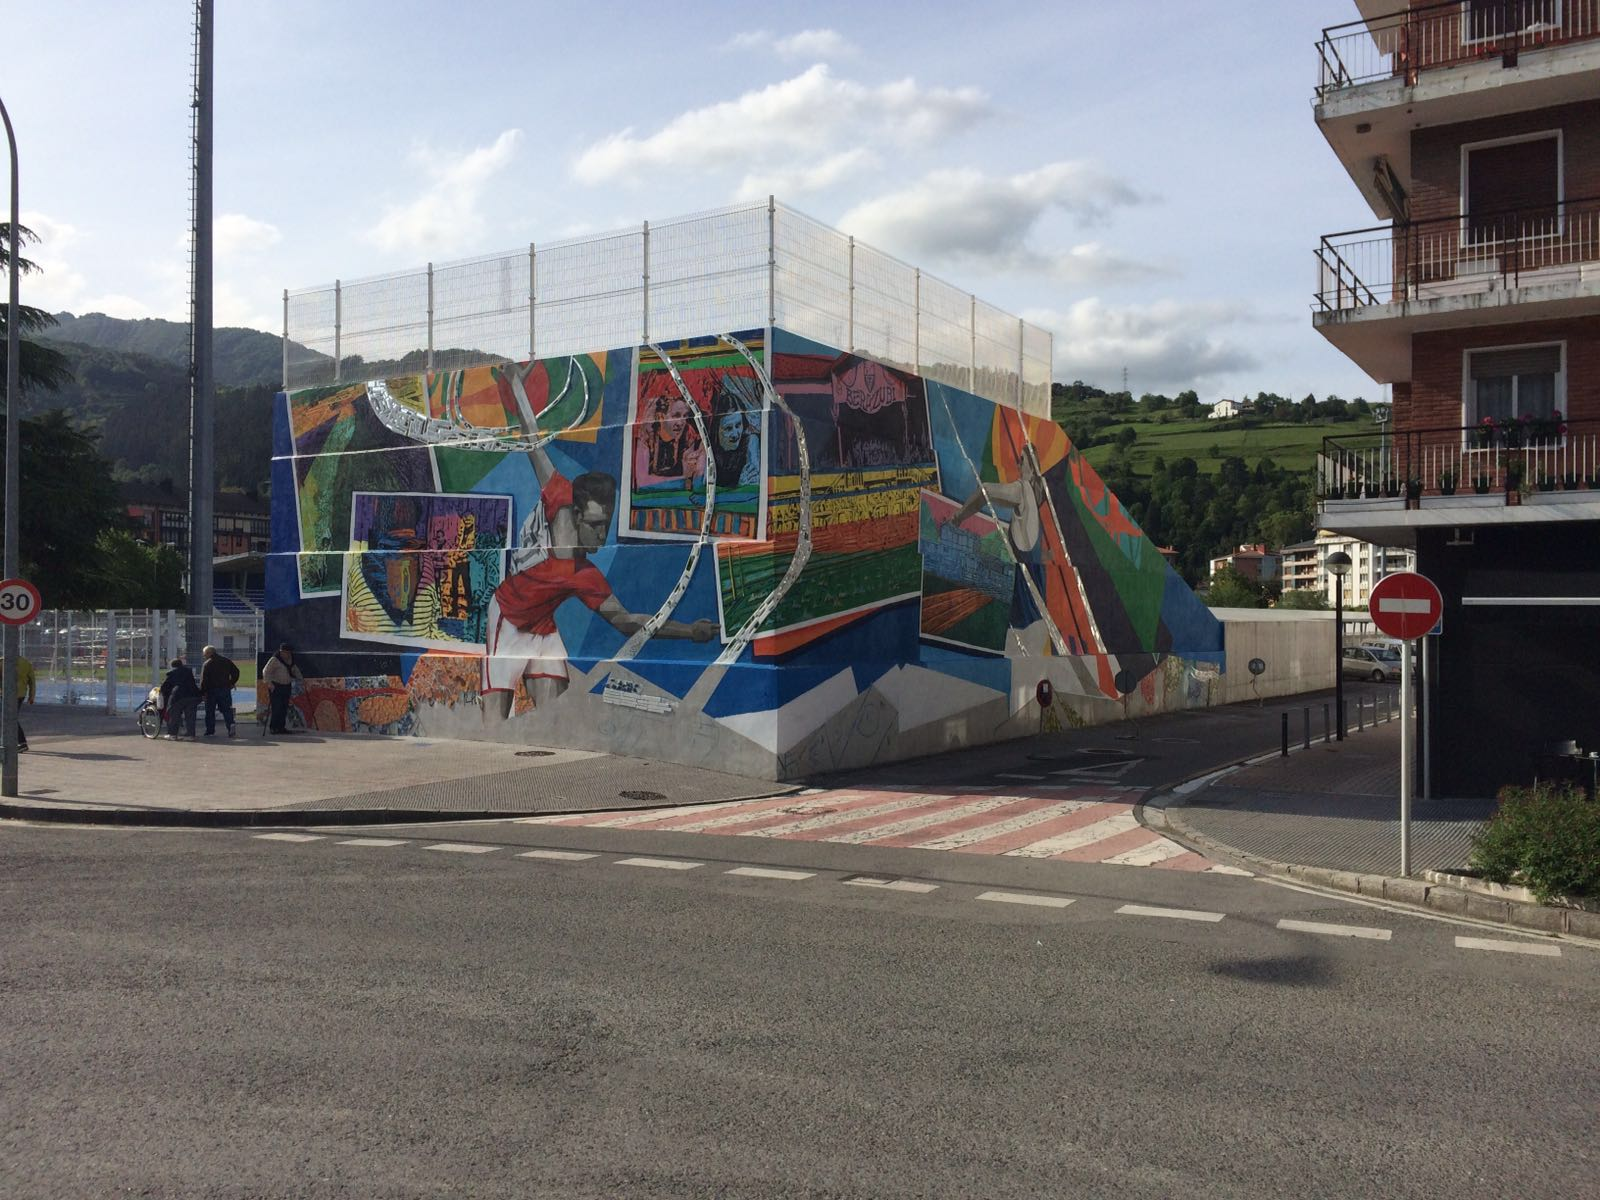 Work in progress. Mural en el estadio de Berazubi, Tolosa (Guipuzcoa)